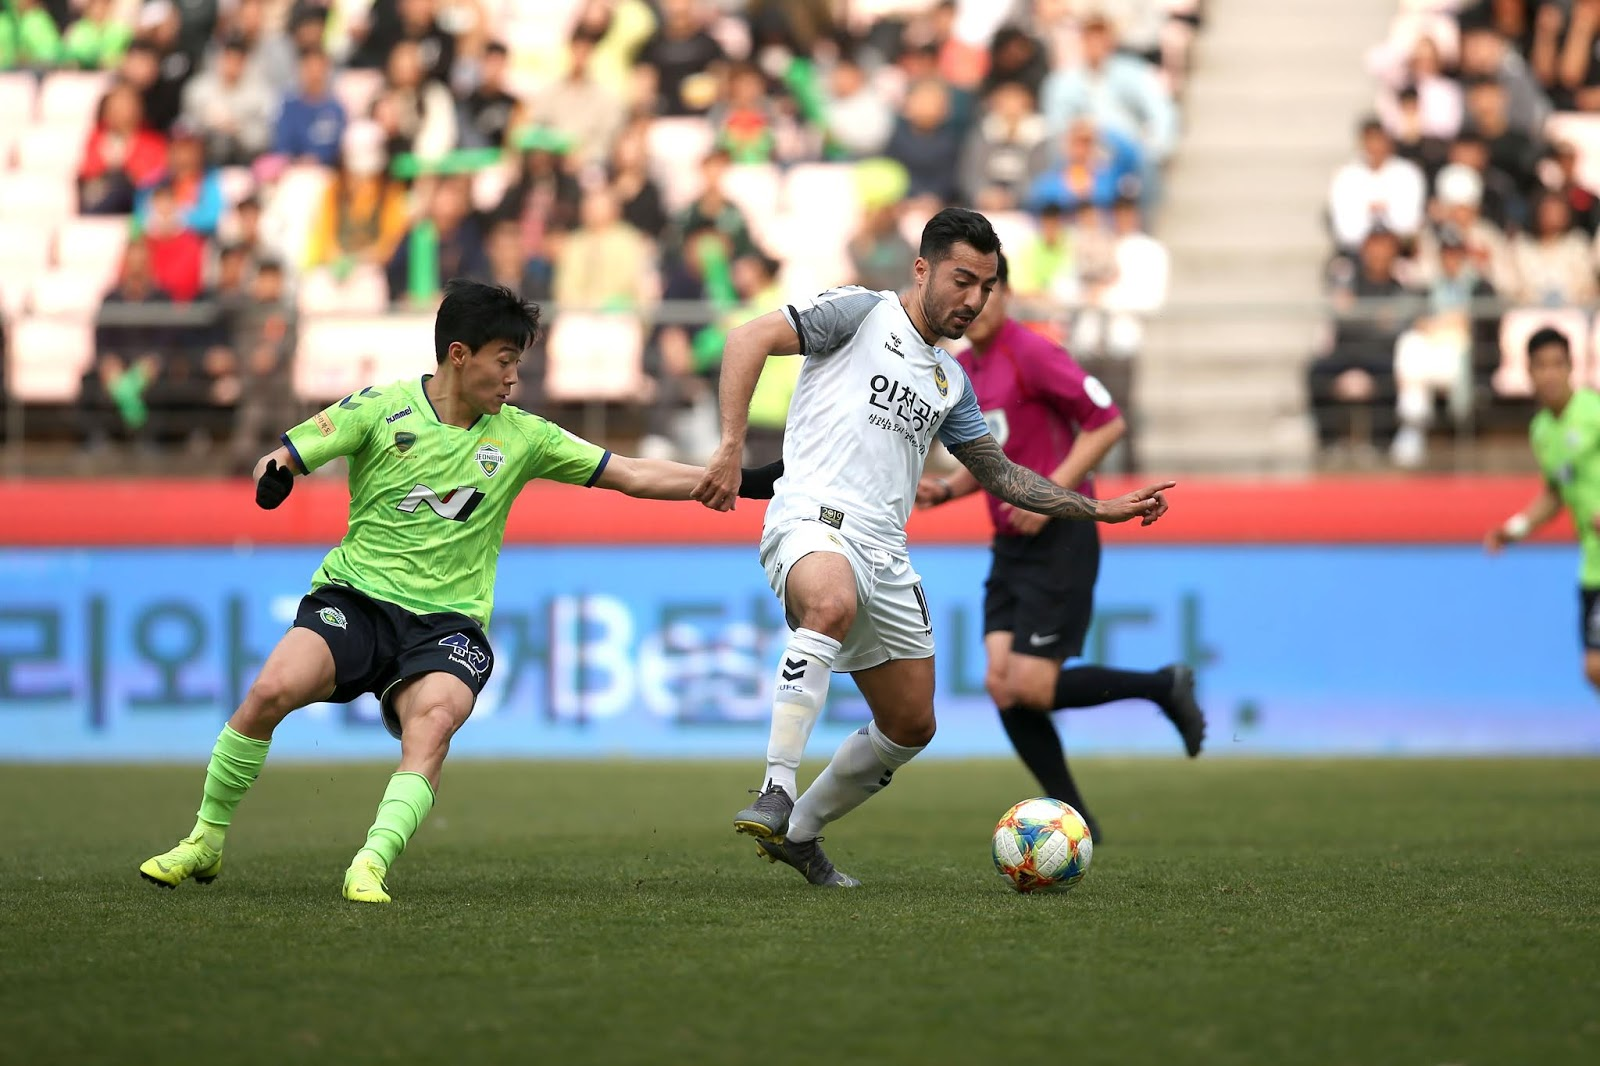 K League 1 Preview: Incheon United vs Jeonbuk Hyundai Motors